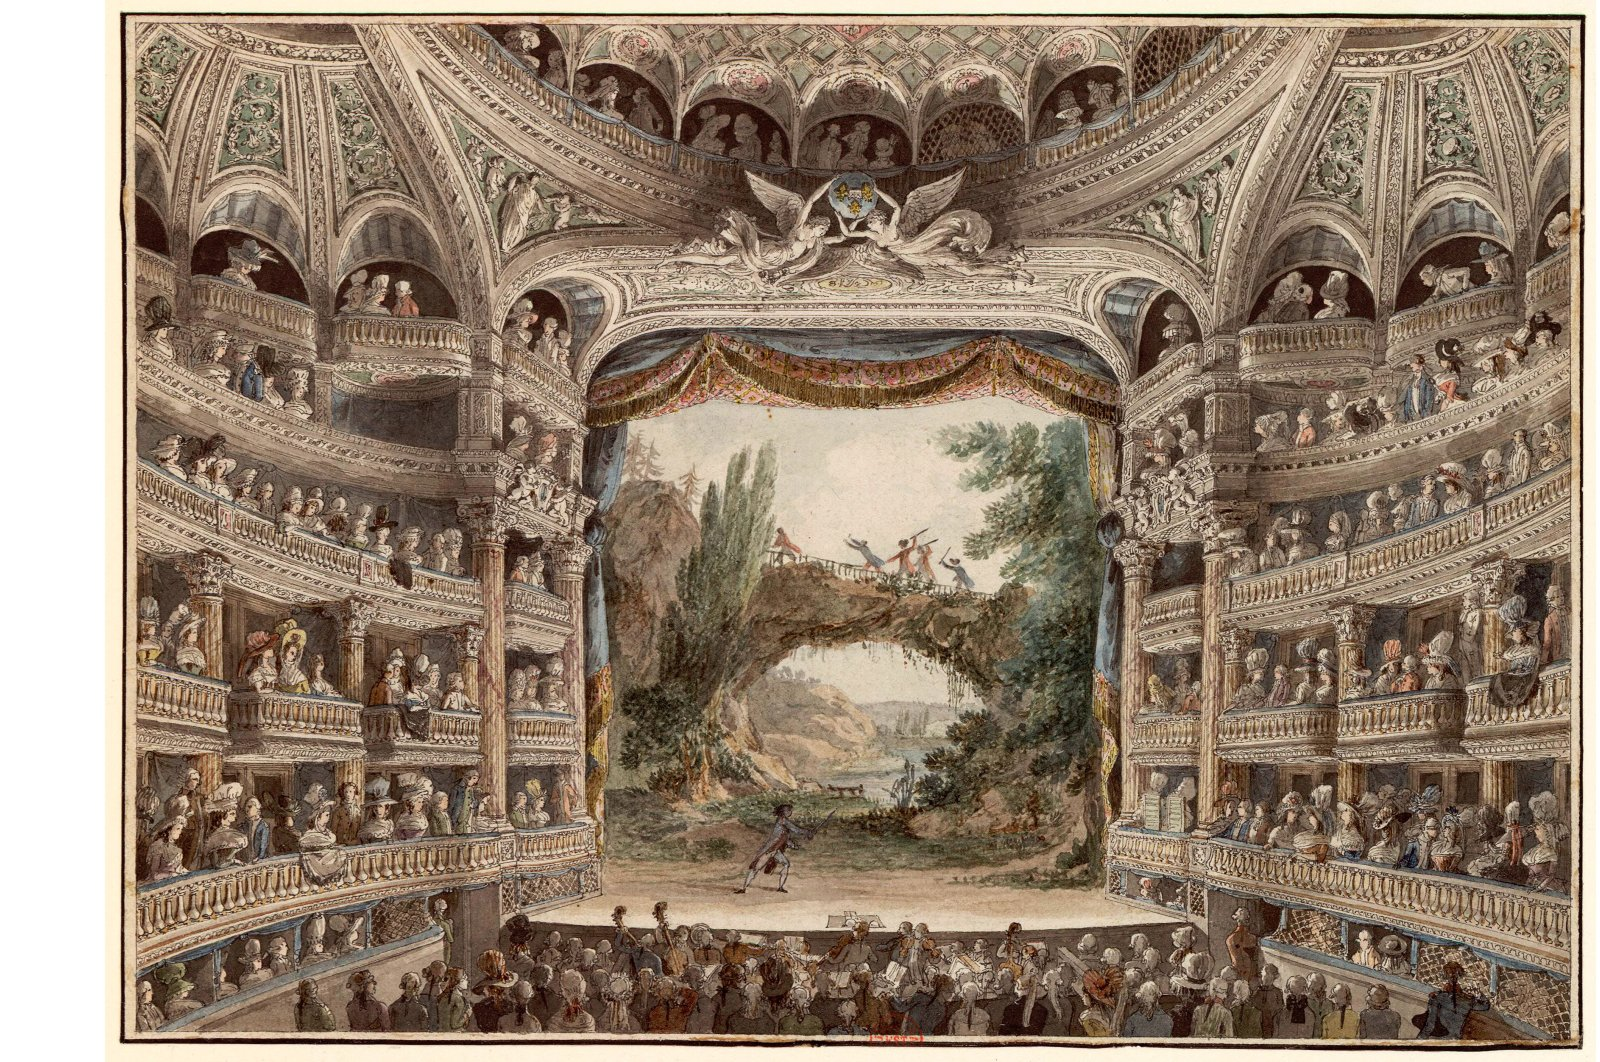 French architect and drawer Antoine Meunier's watercolor painting showing the interior of the Comedie-Française Theatre in Paris.